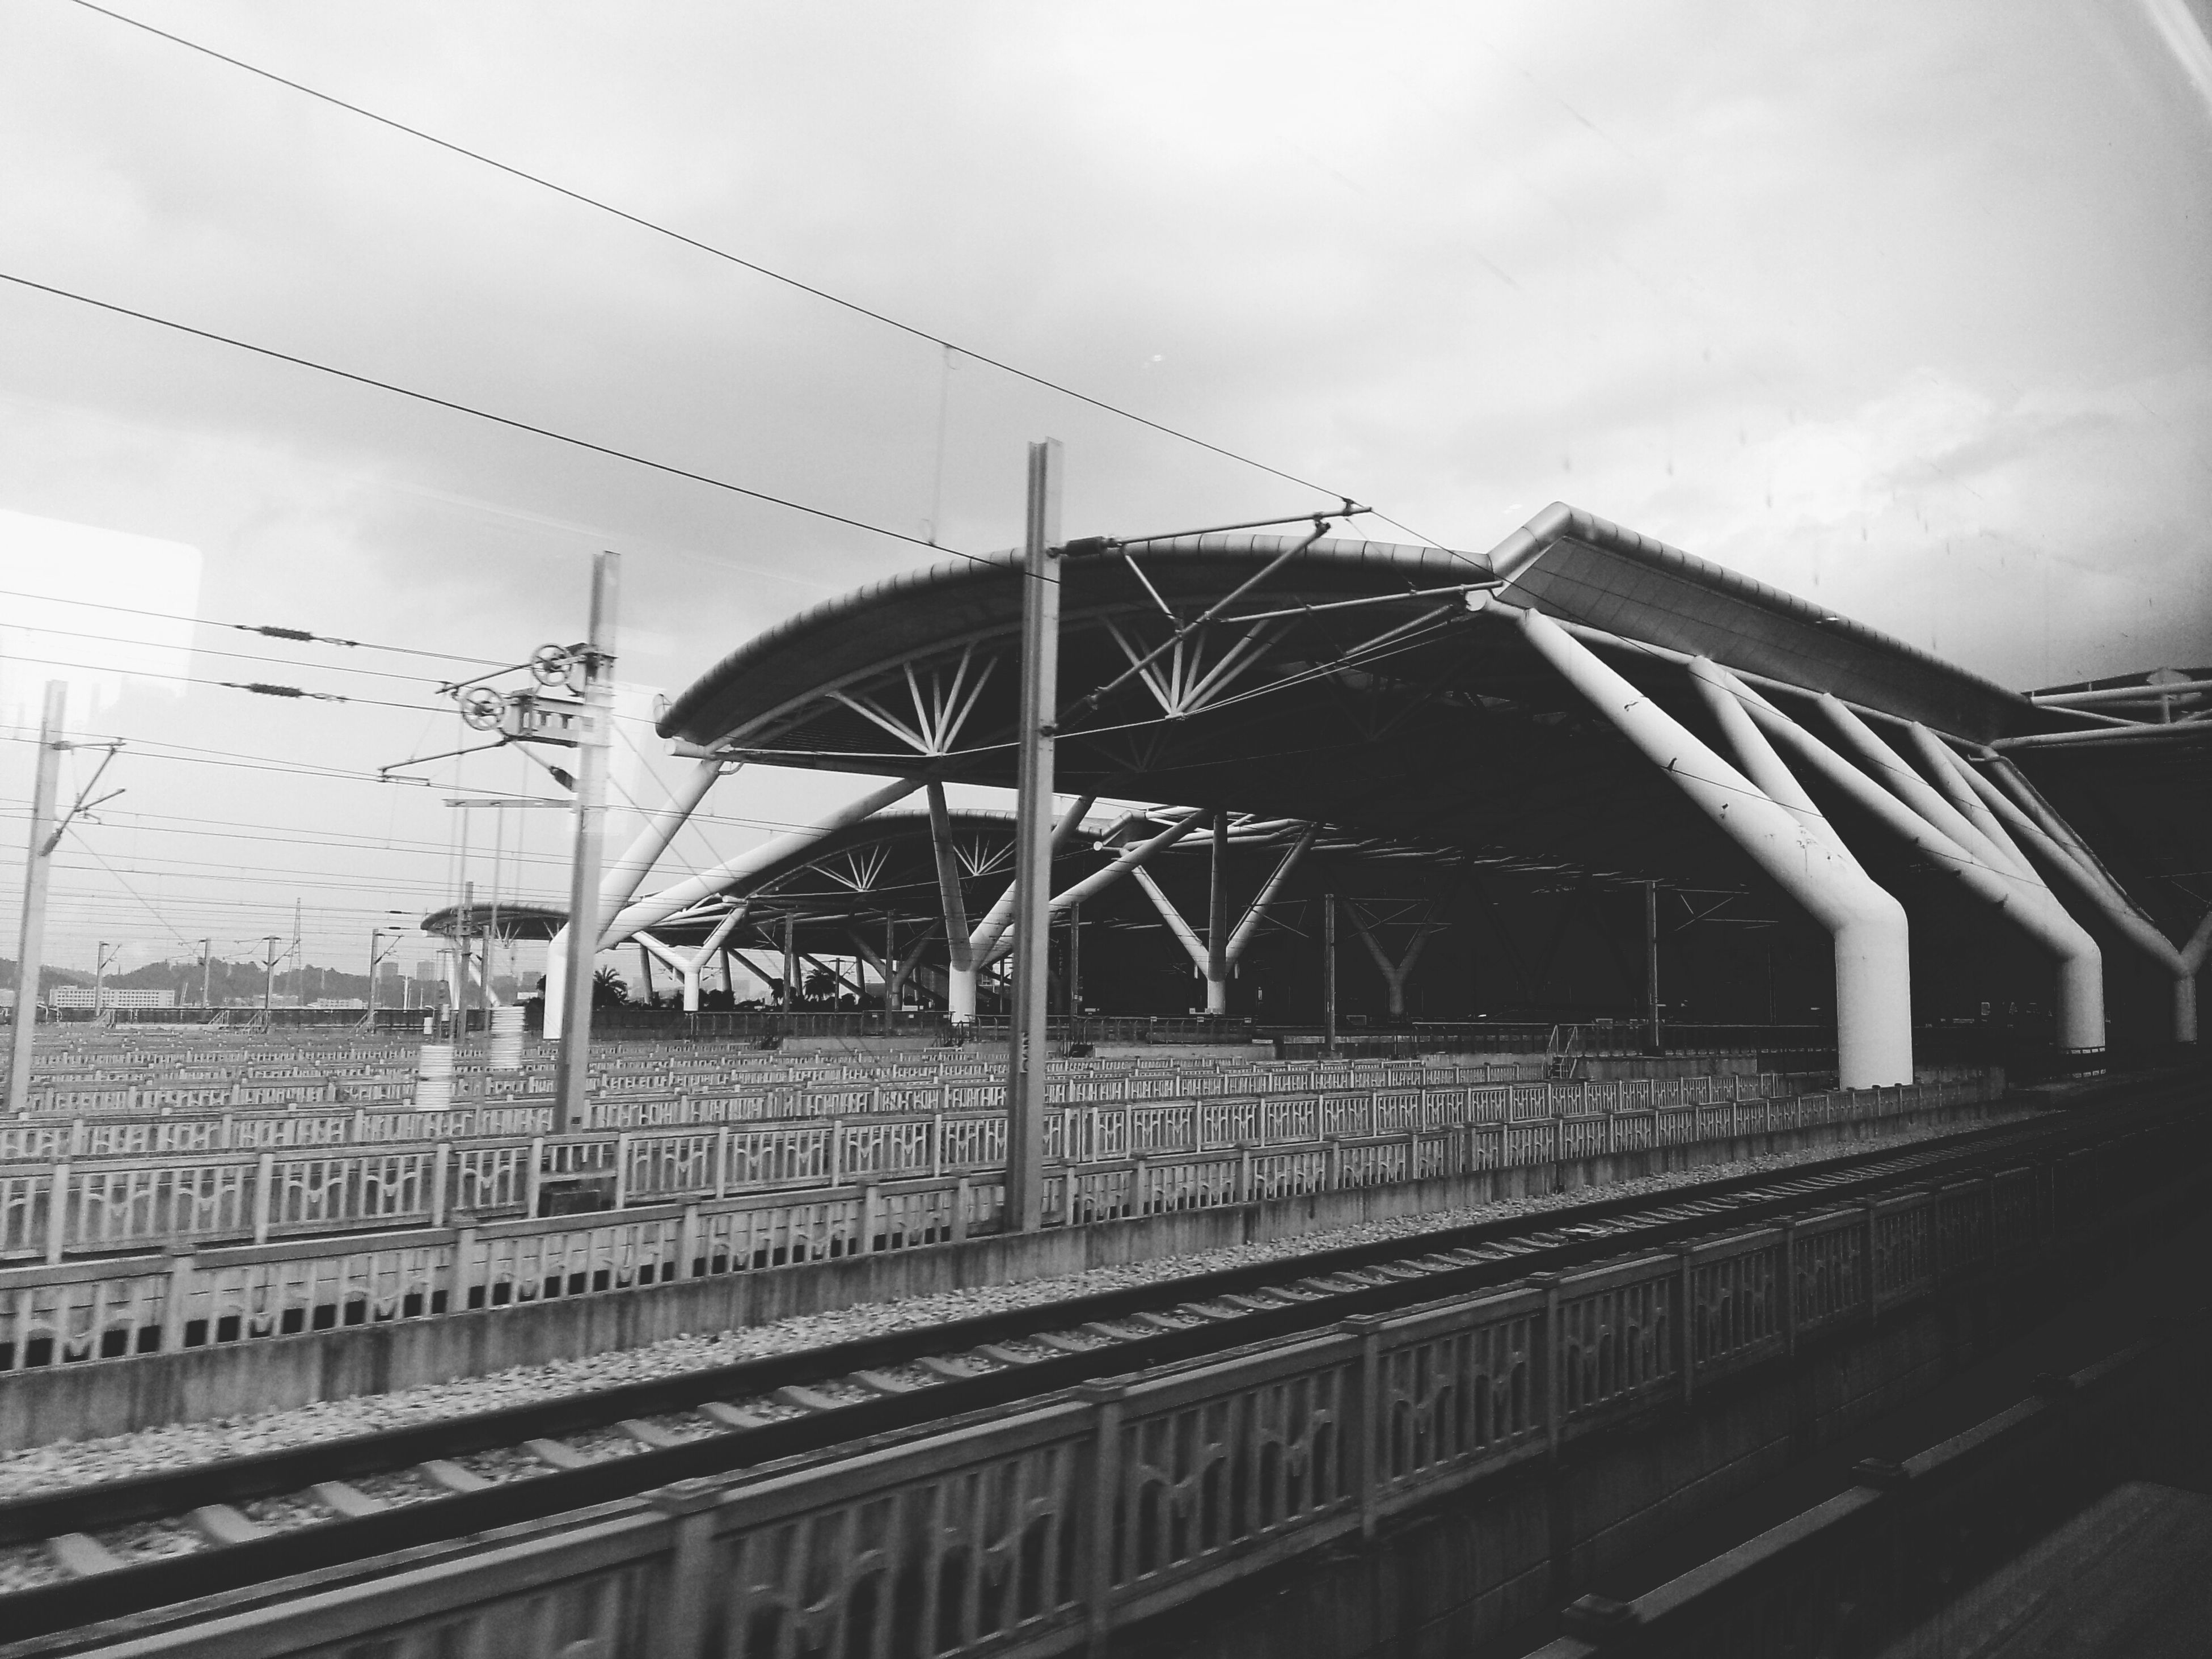 architecture, built structure, sky, low angle view, building exterior, railing, connection, cloud - sky, rail transportation, day, bridge - man made structure, transportation, railroad station, no people, outdoors, railroad track, cloudy, building, cloud, diminishing perspective